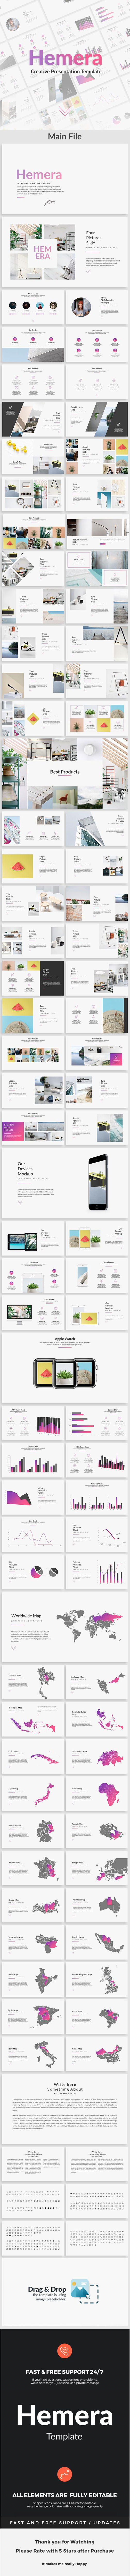 Hemera - Creative Powerpoint Template